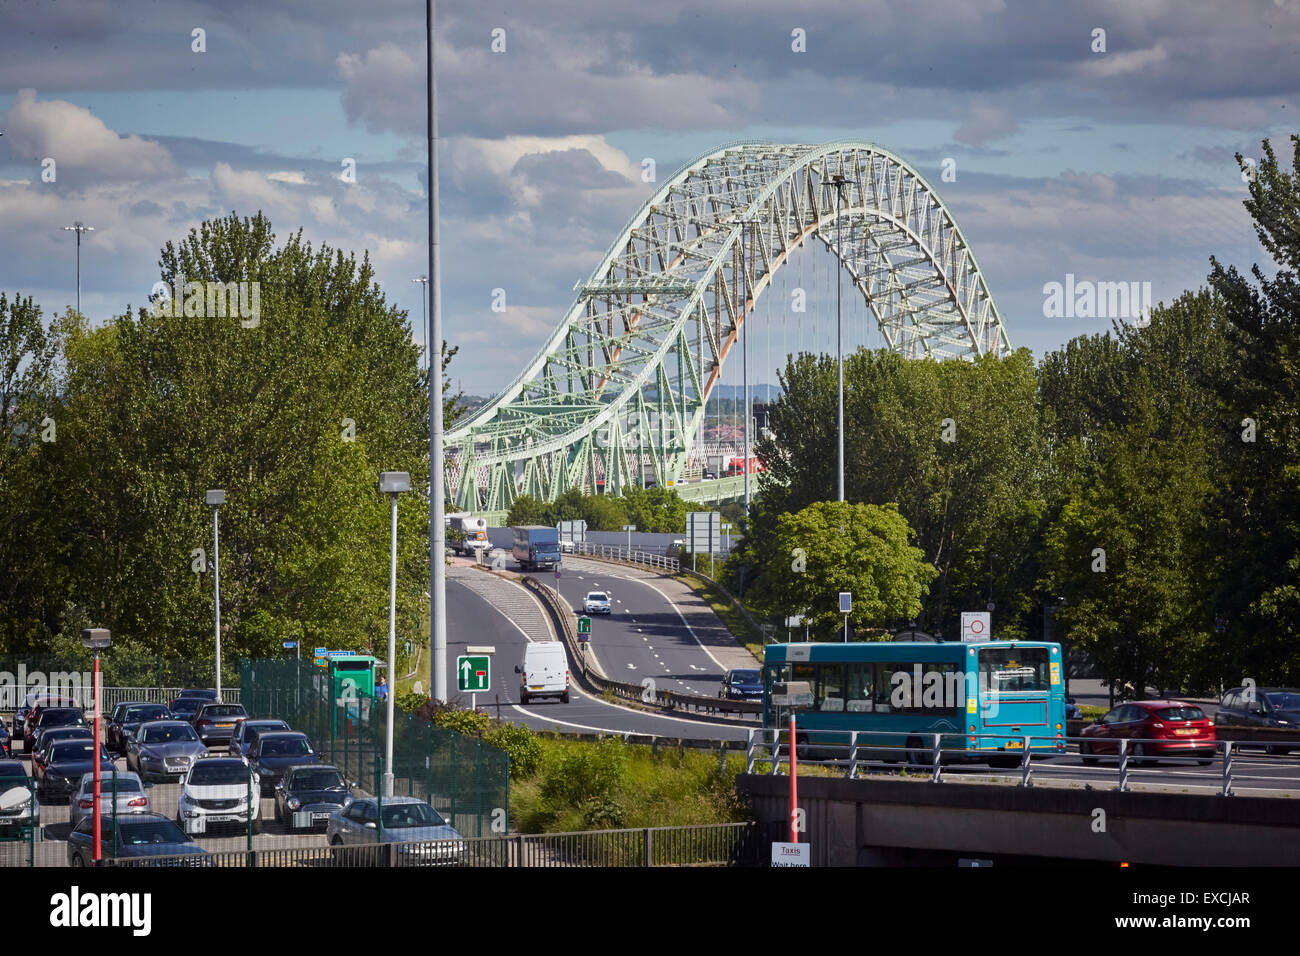 Runcorn is an industrial town and cargo port in Halton, Cheshire, UK.  Pictured The Silver Jubilee Bridge or Runcorn - Stock Image